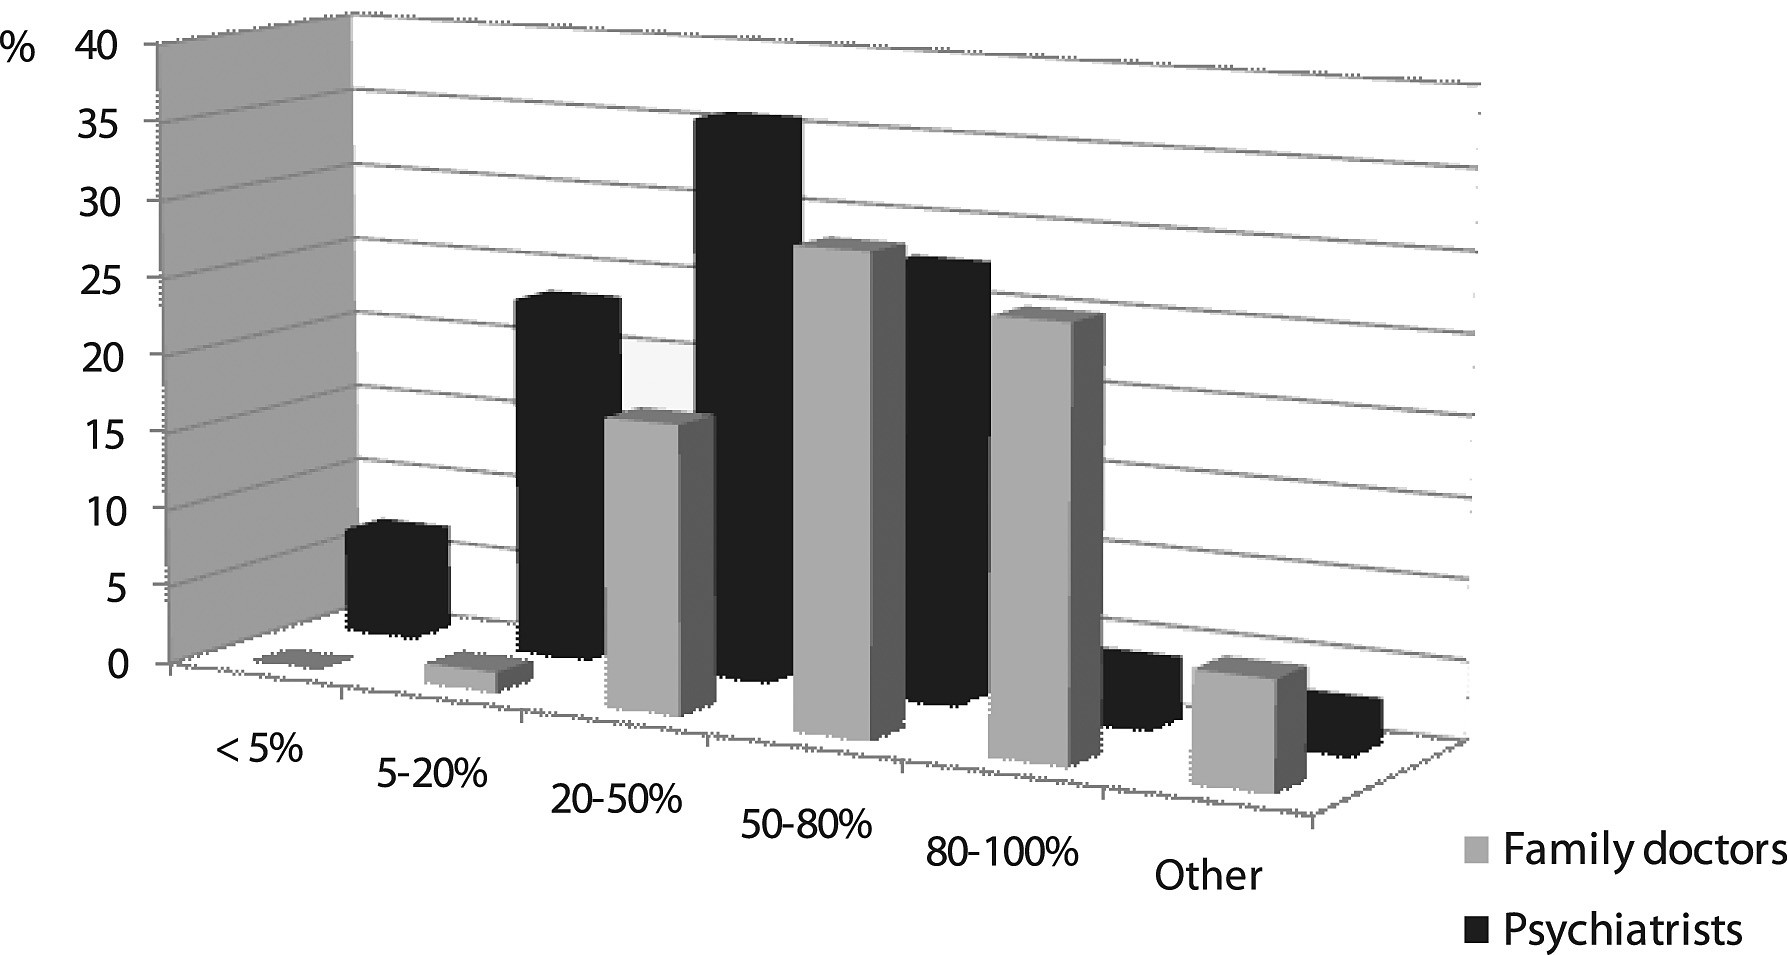 Fig. 5. Relapsed depression frequency in usual practice by family doctors and psychiatrists opinion